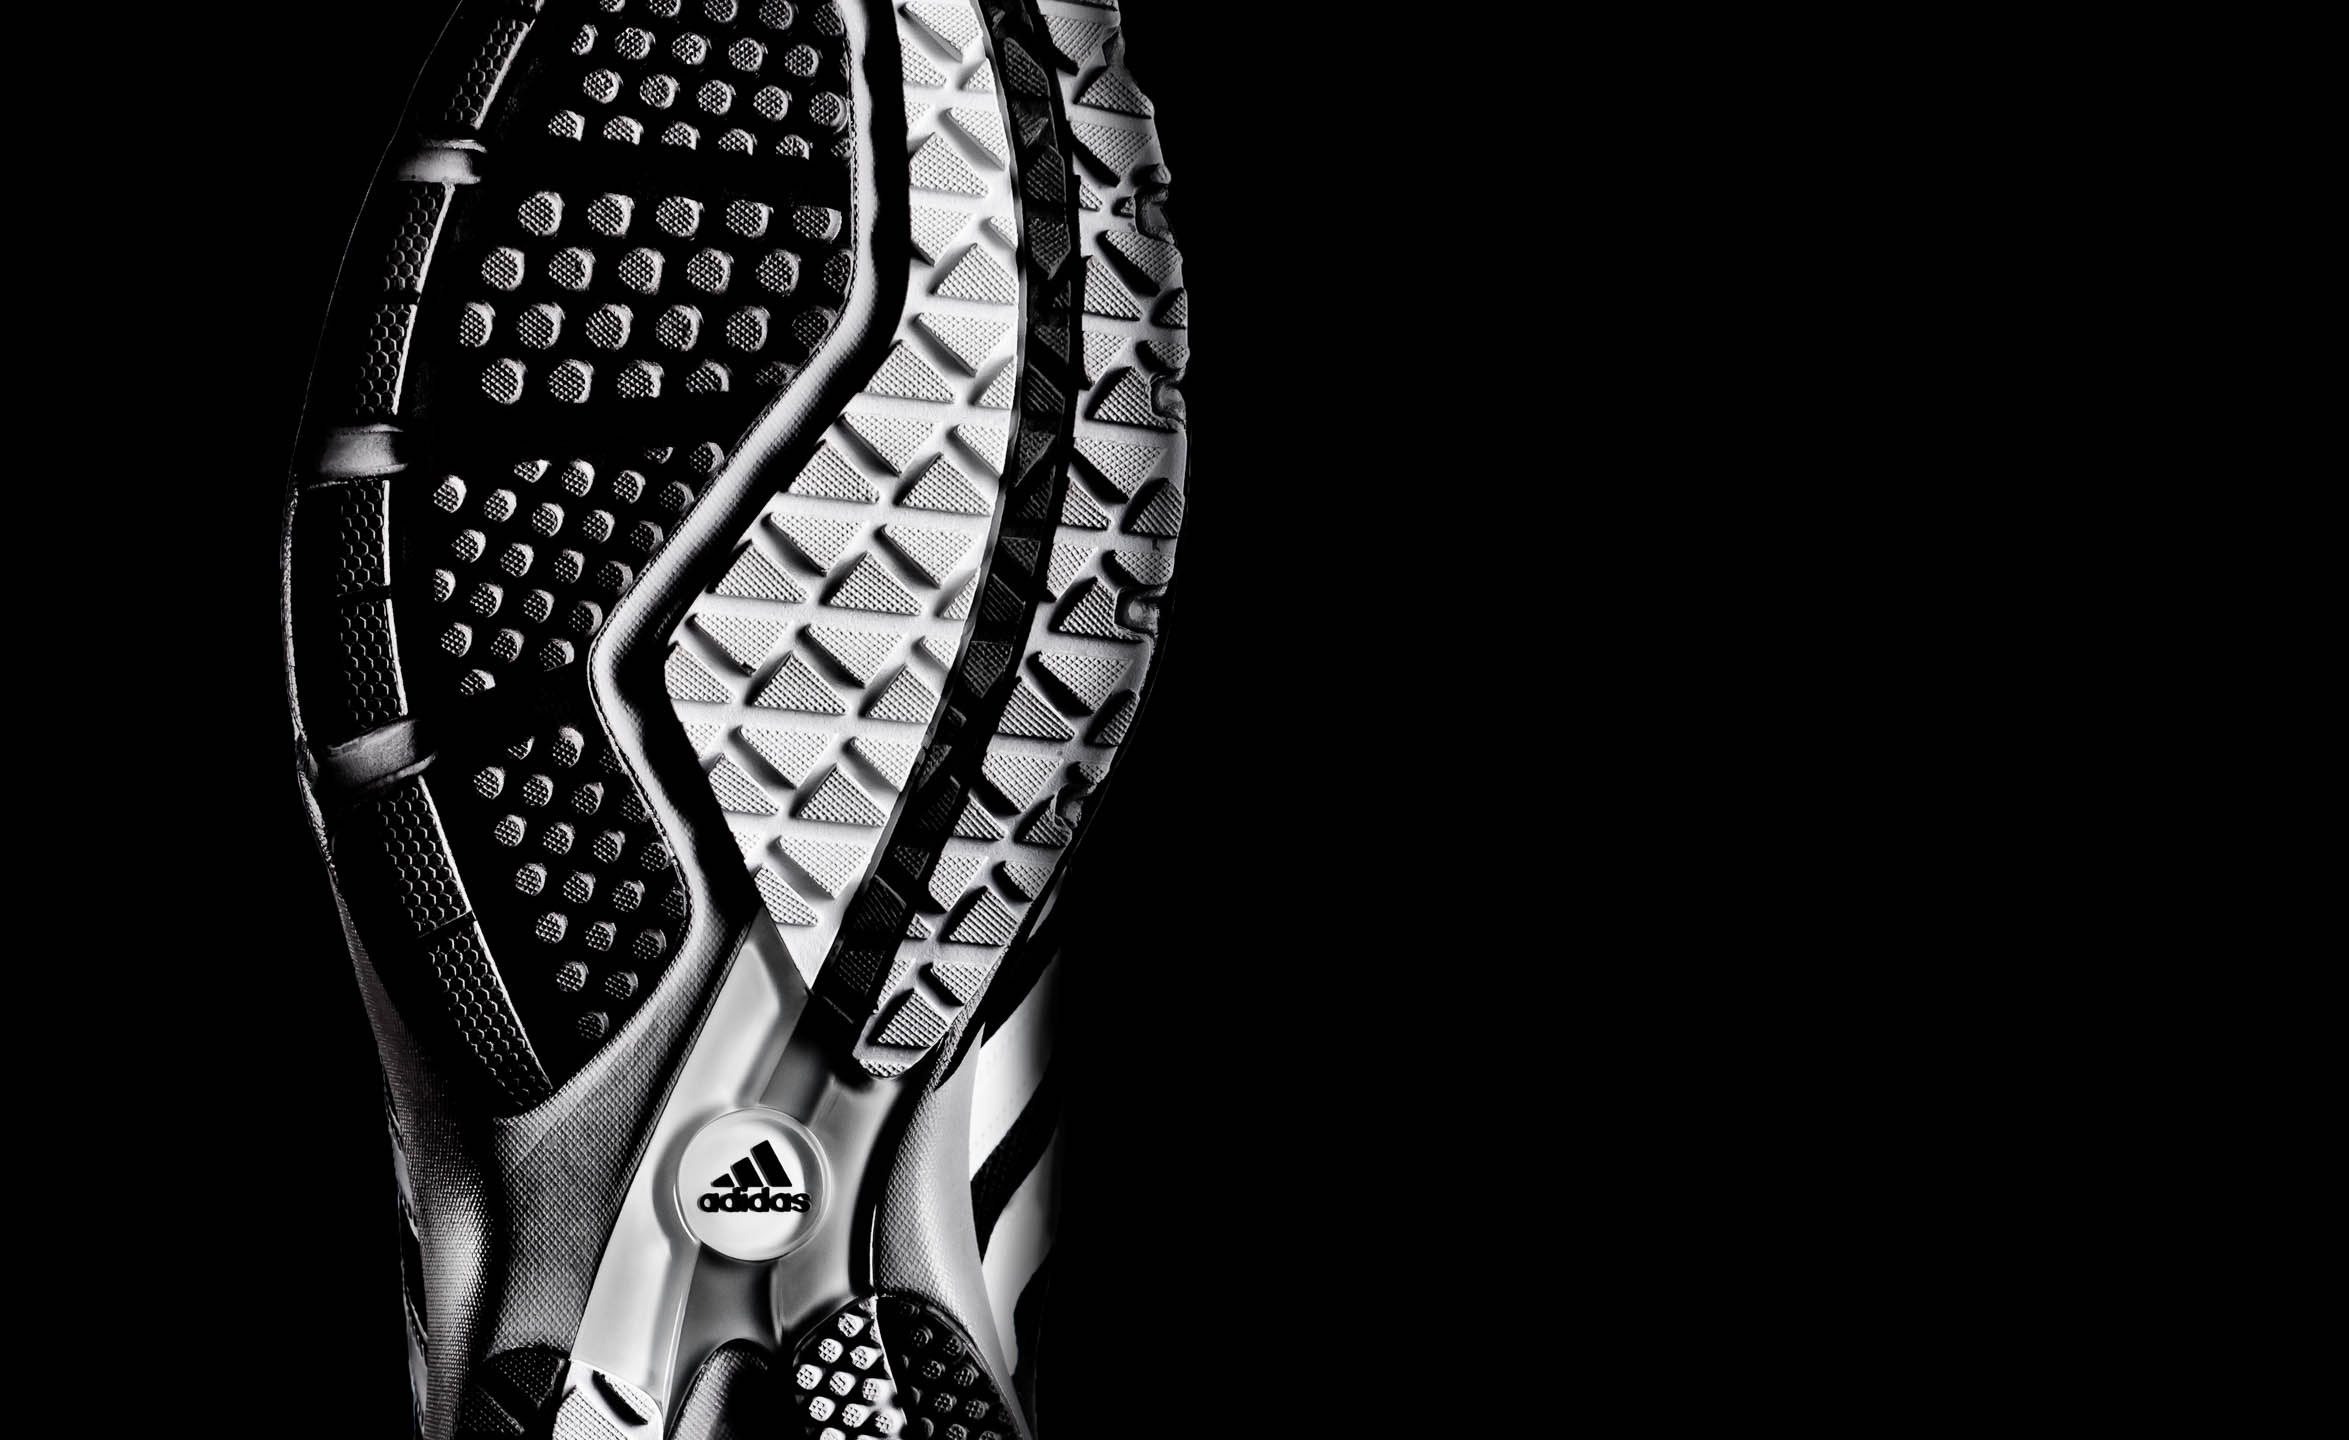 Adidas running footwear outsole by Steve Temple Photography